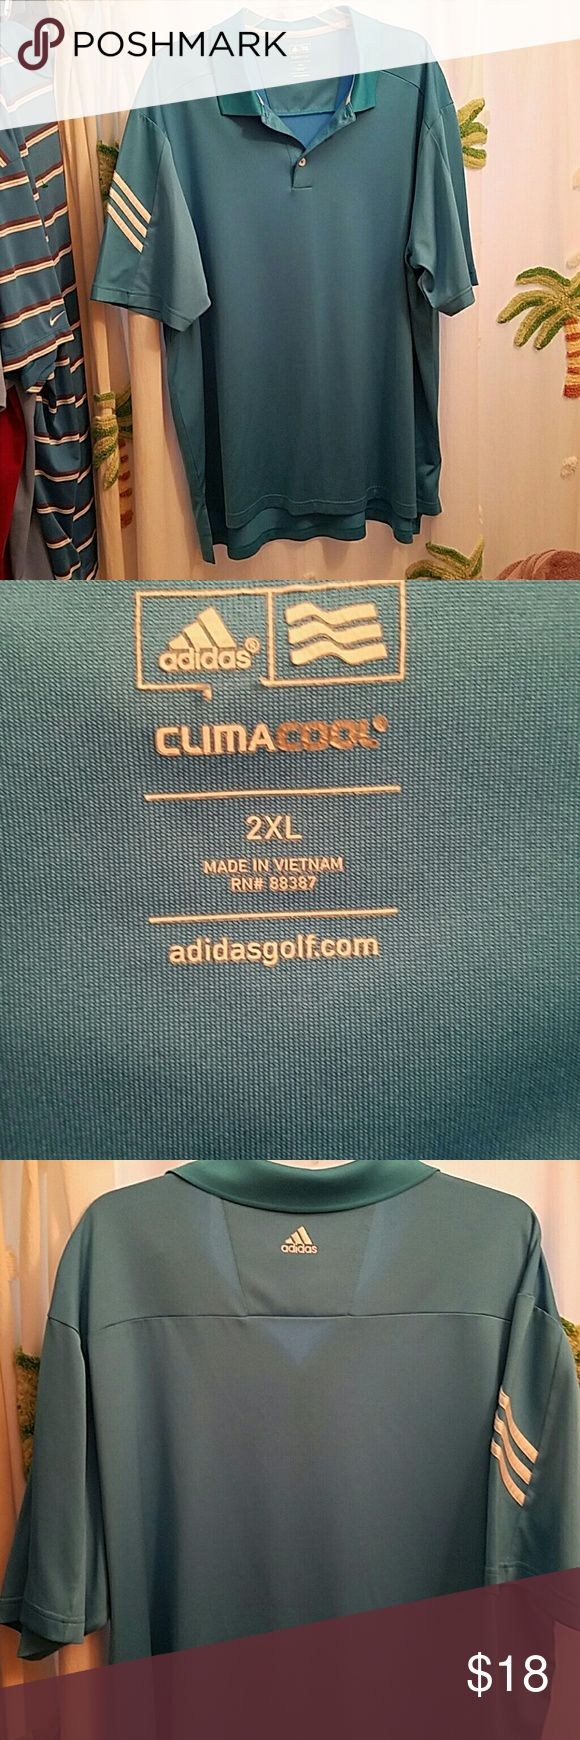 Adidas mens golf shirt size 2XL Adidas climacool men's golf shirt size 2XL in EUC. I do discount if you bundle 2 or more Adidas Shirts Polos